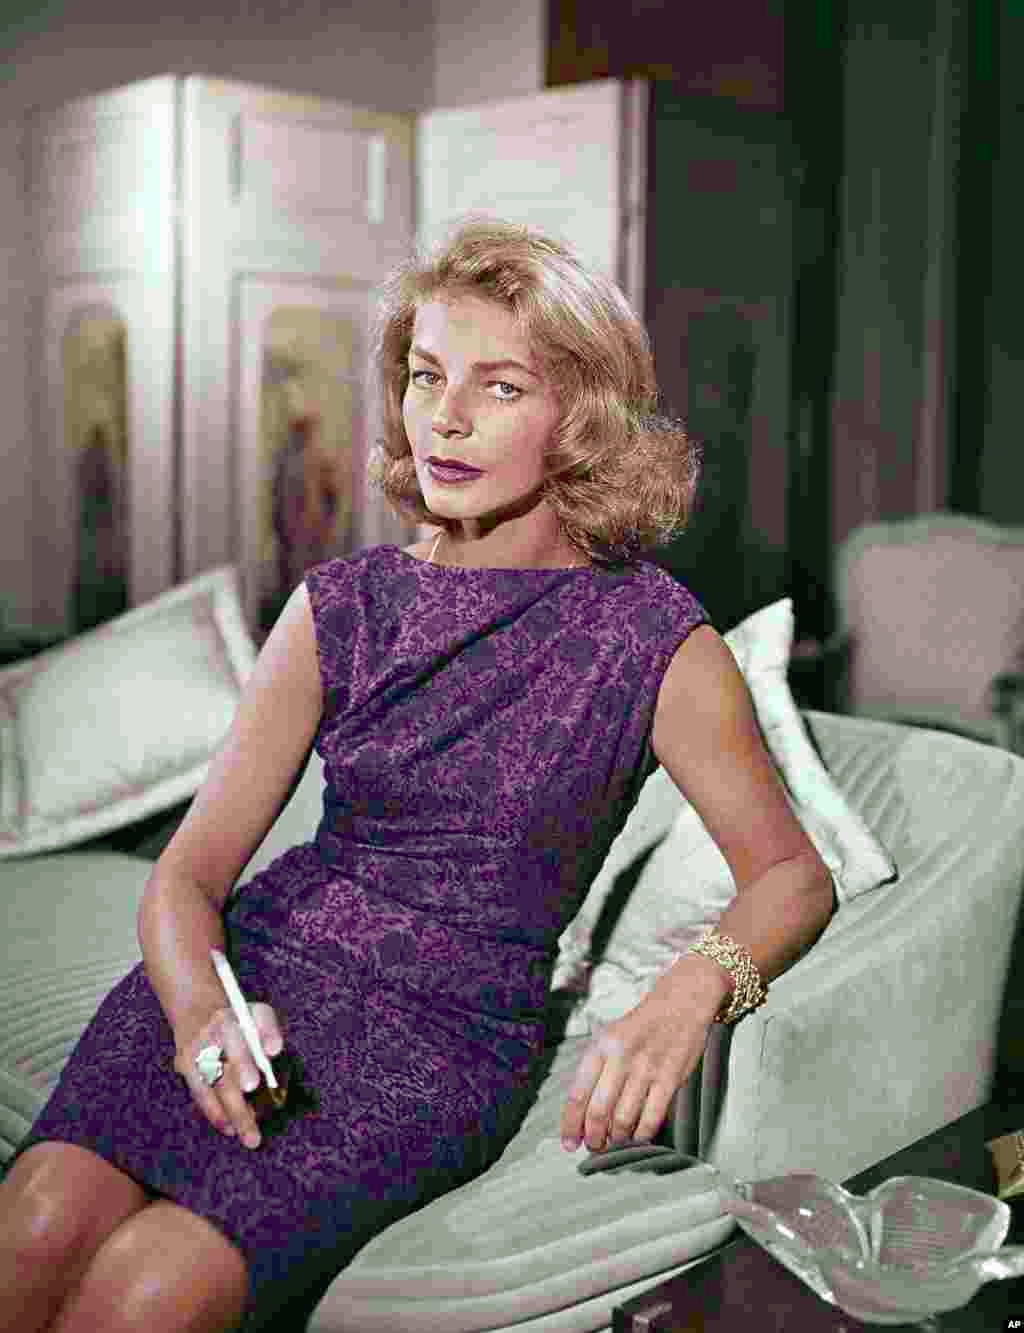 Actress Lauren Bacall at her home in New York, 1965. Bacall, the sultry-voiced actress died in New York, Aug. 12, 2014.